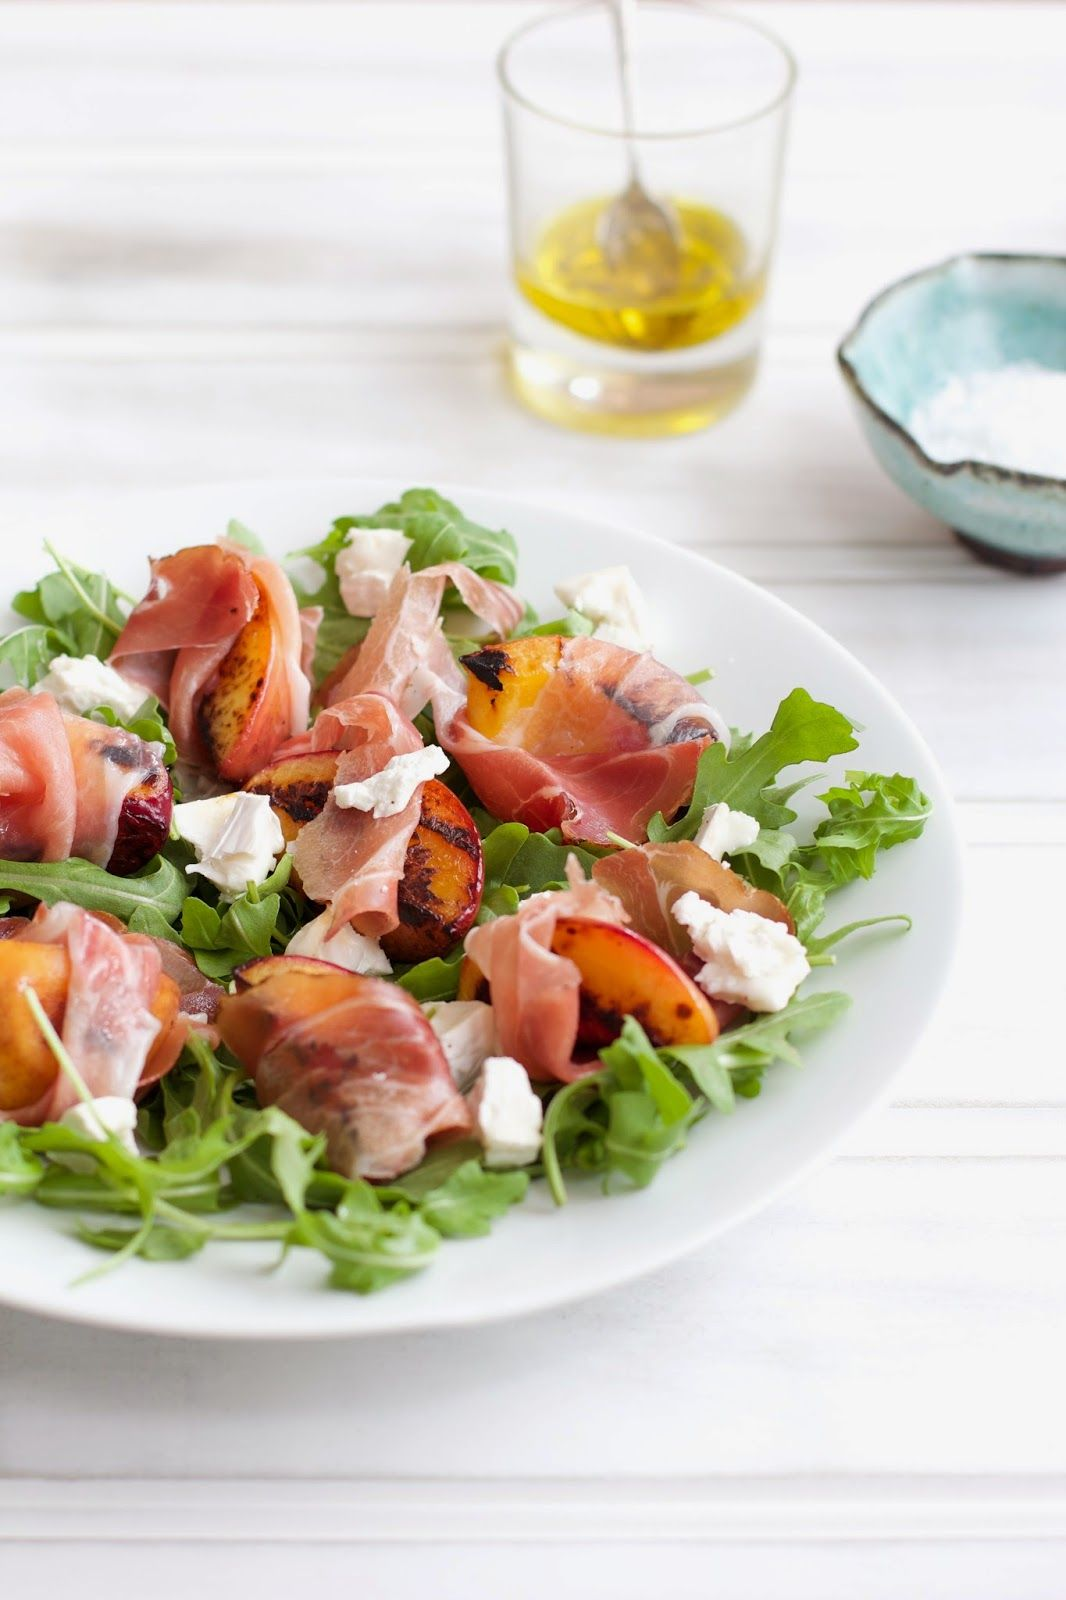 PEACH PROSCIUTTO GOATS CHEESE SALAD